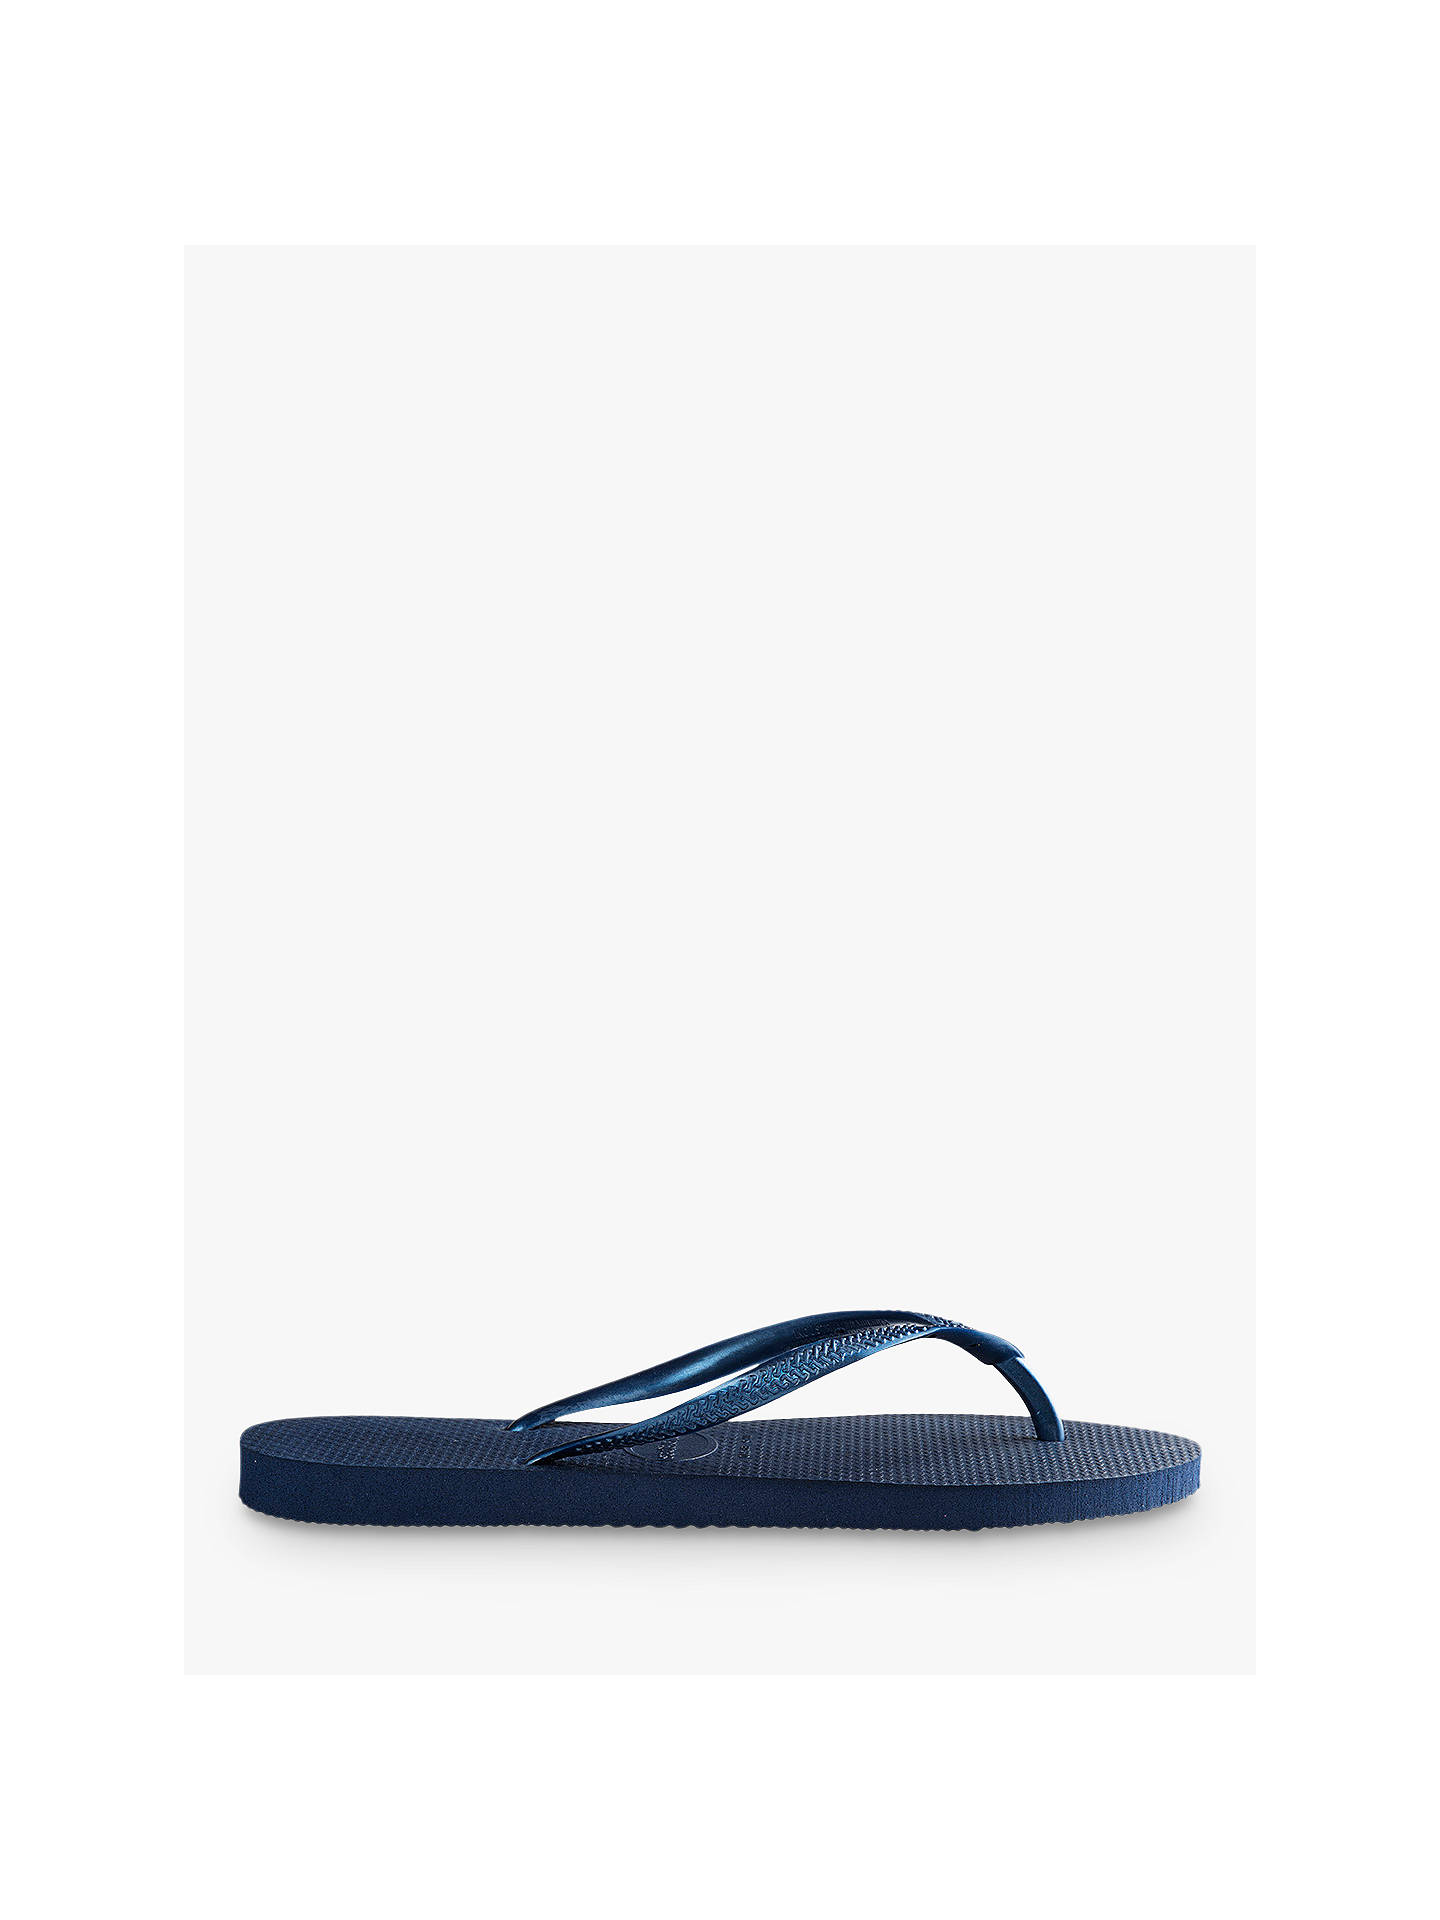 a3a8814fe Havaianas Slim Flip Flops at John Lewis   Partners